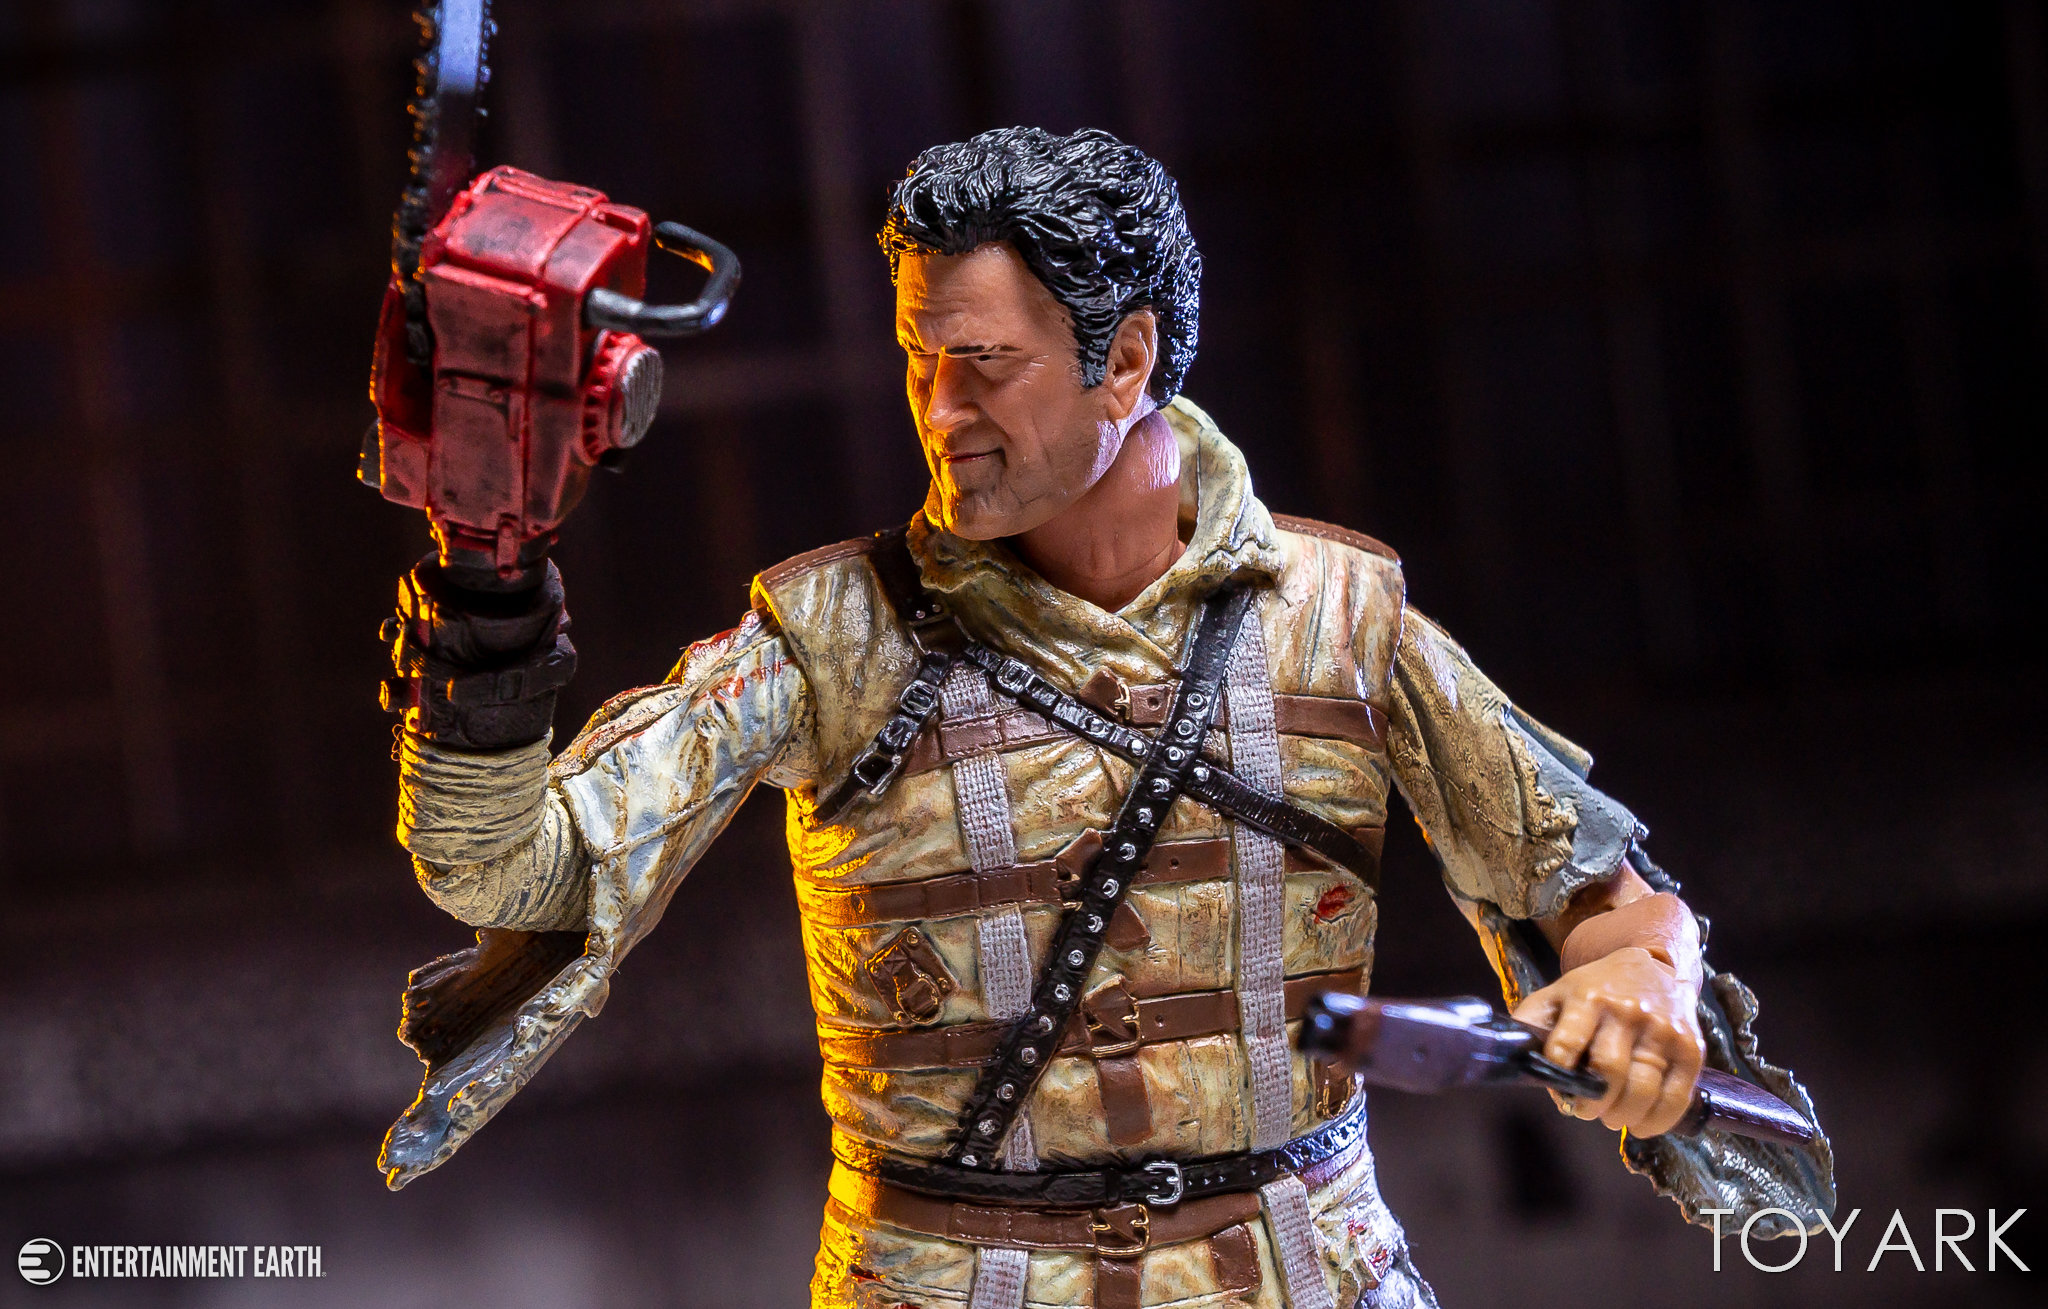 http://news.toyark.com/wp-content/uploads/sites/4/2018/04/Ash-vs-Evil-Dead-Series-2-NECA-041.jpg